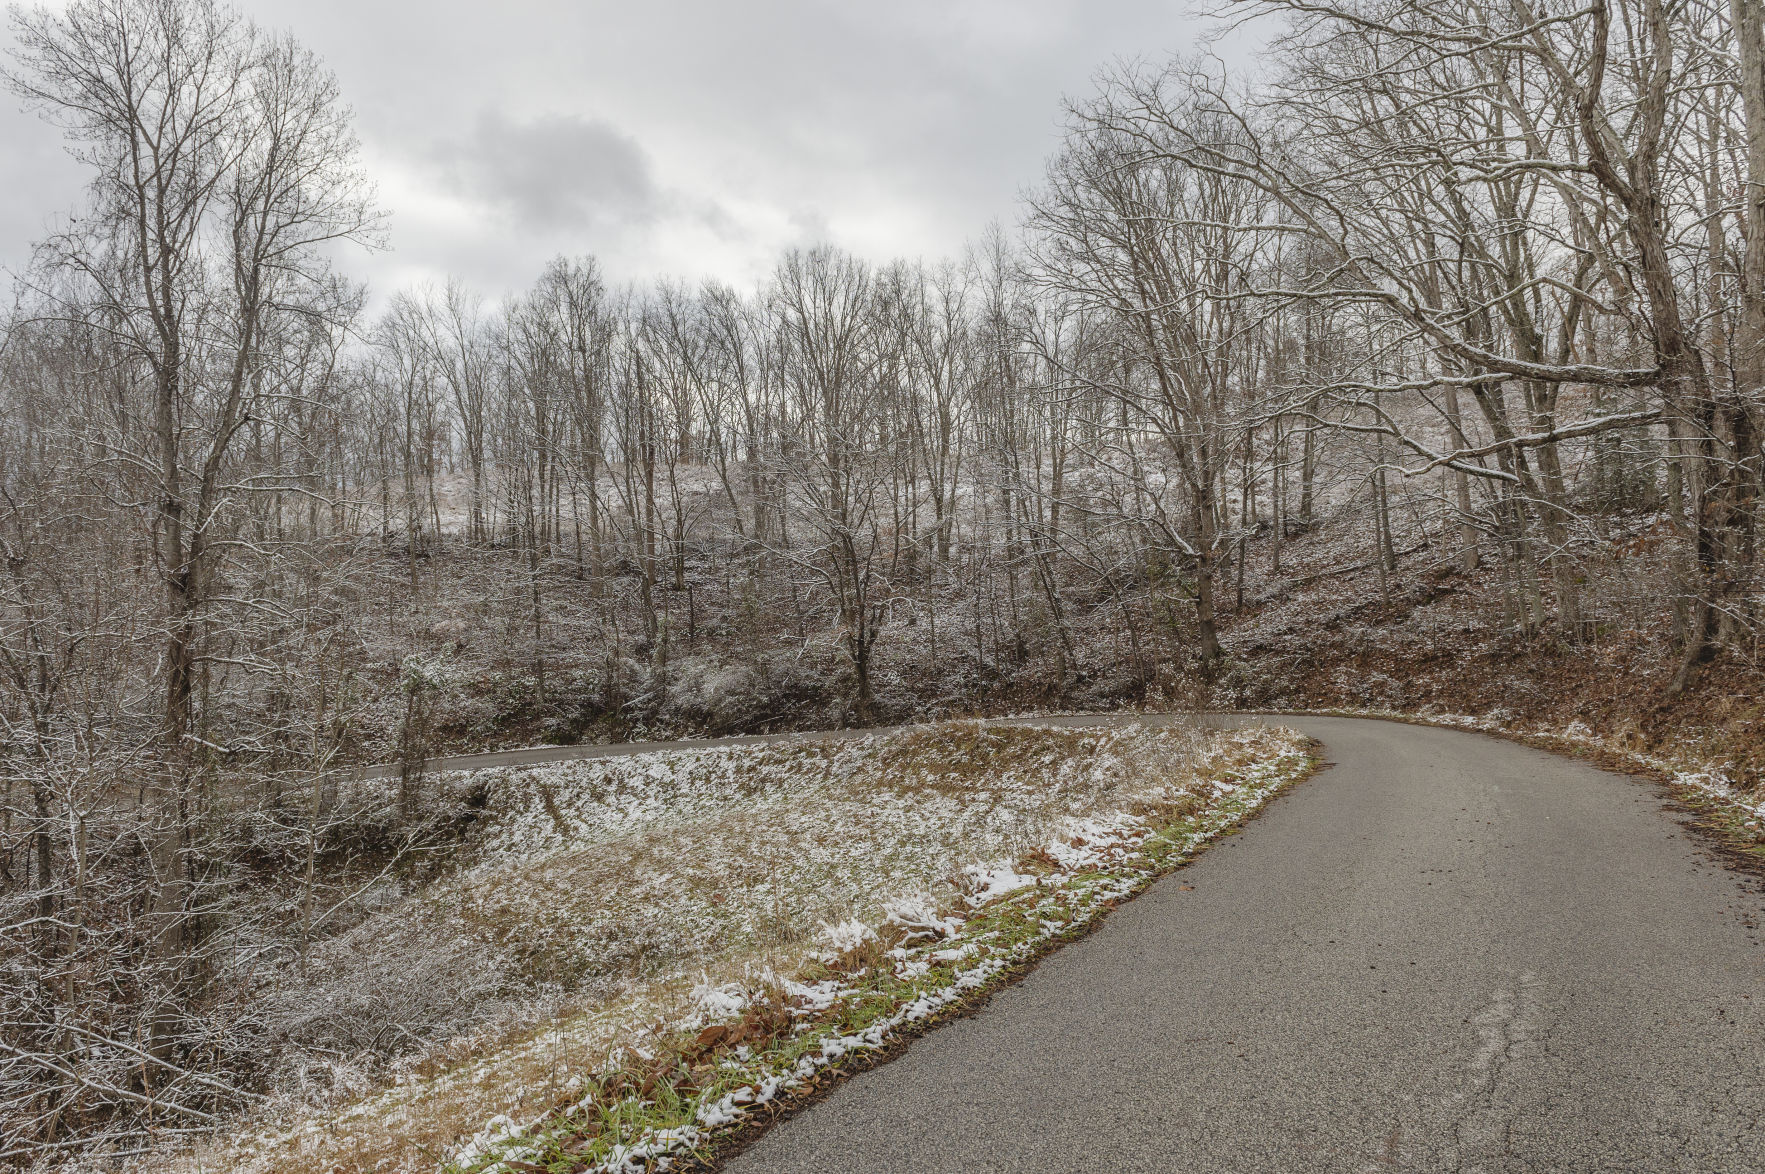 Allen Adkins and his brothers and sisters live off this curve in Harless Fork Road, in Lincoln County. Adkins remembers his father thought he'd die before seeing a paved road cut through the hollow. Today, Adkins wonders if he will feel the same about water service. (Photo by Craig Hudson | Gazette-Mail)